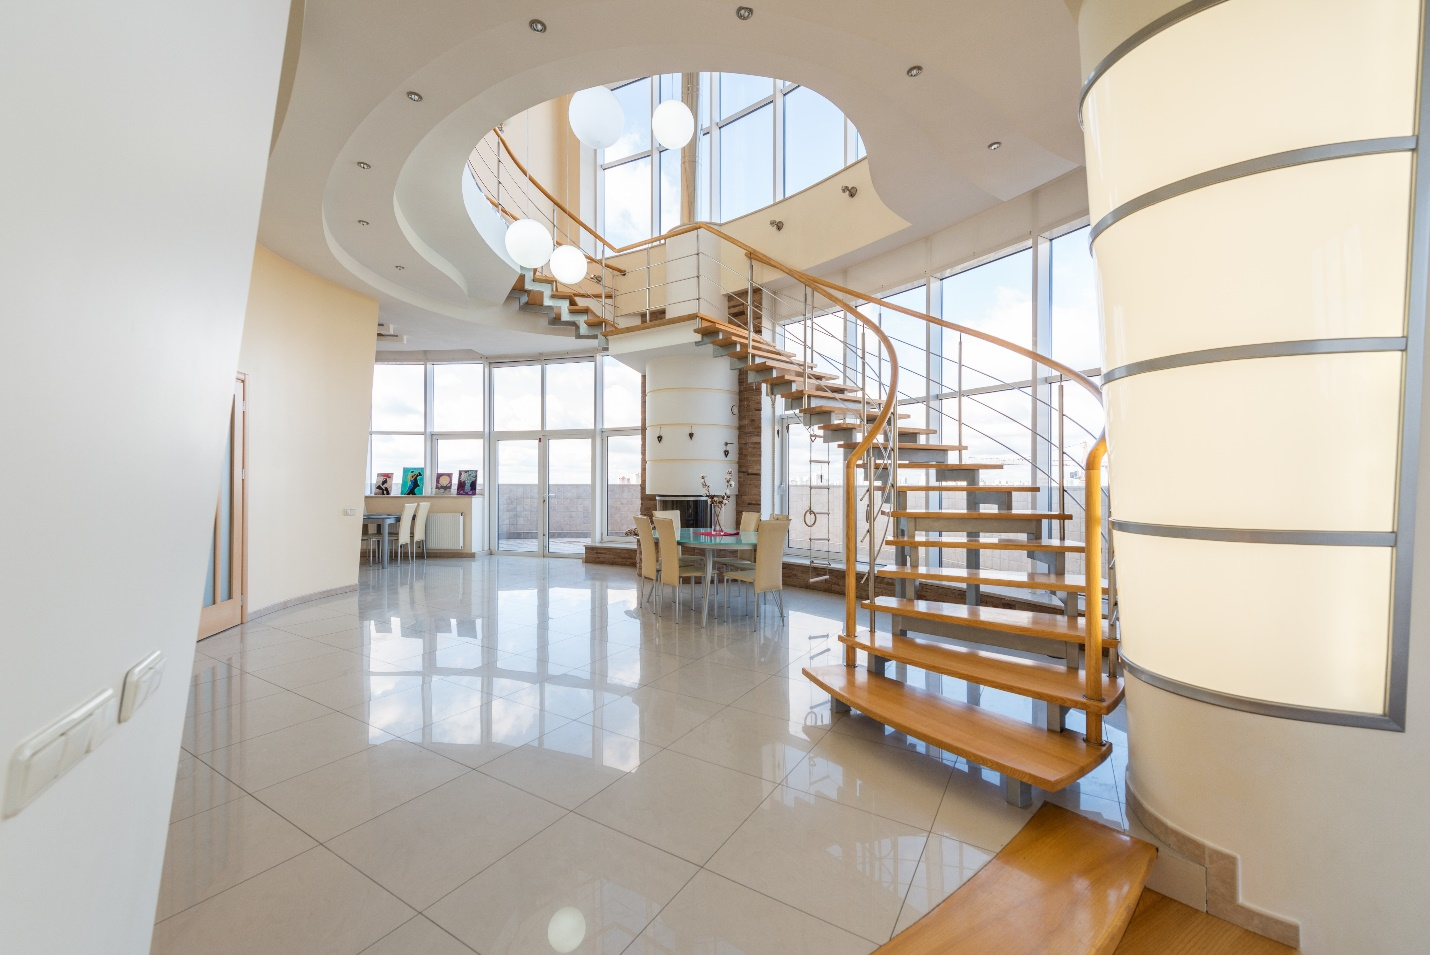 room with high ceiling and winding staircase